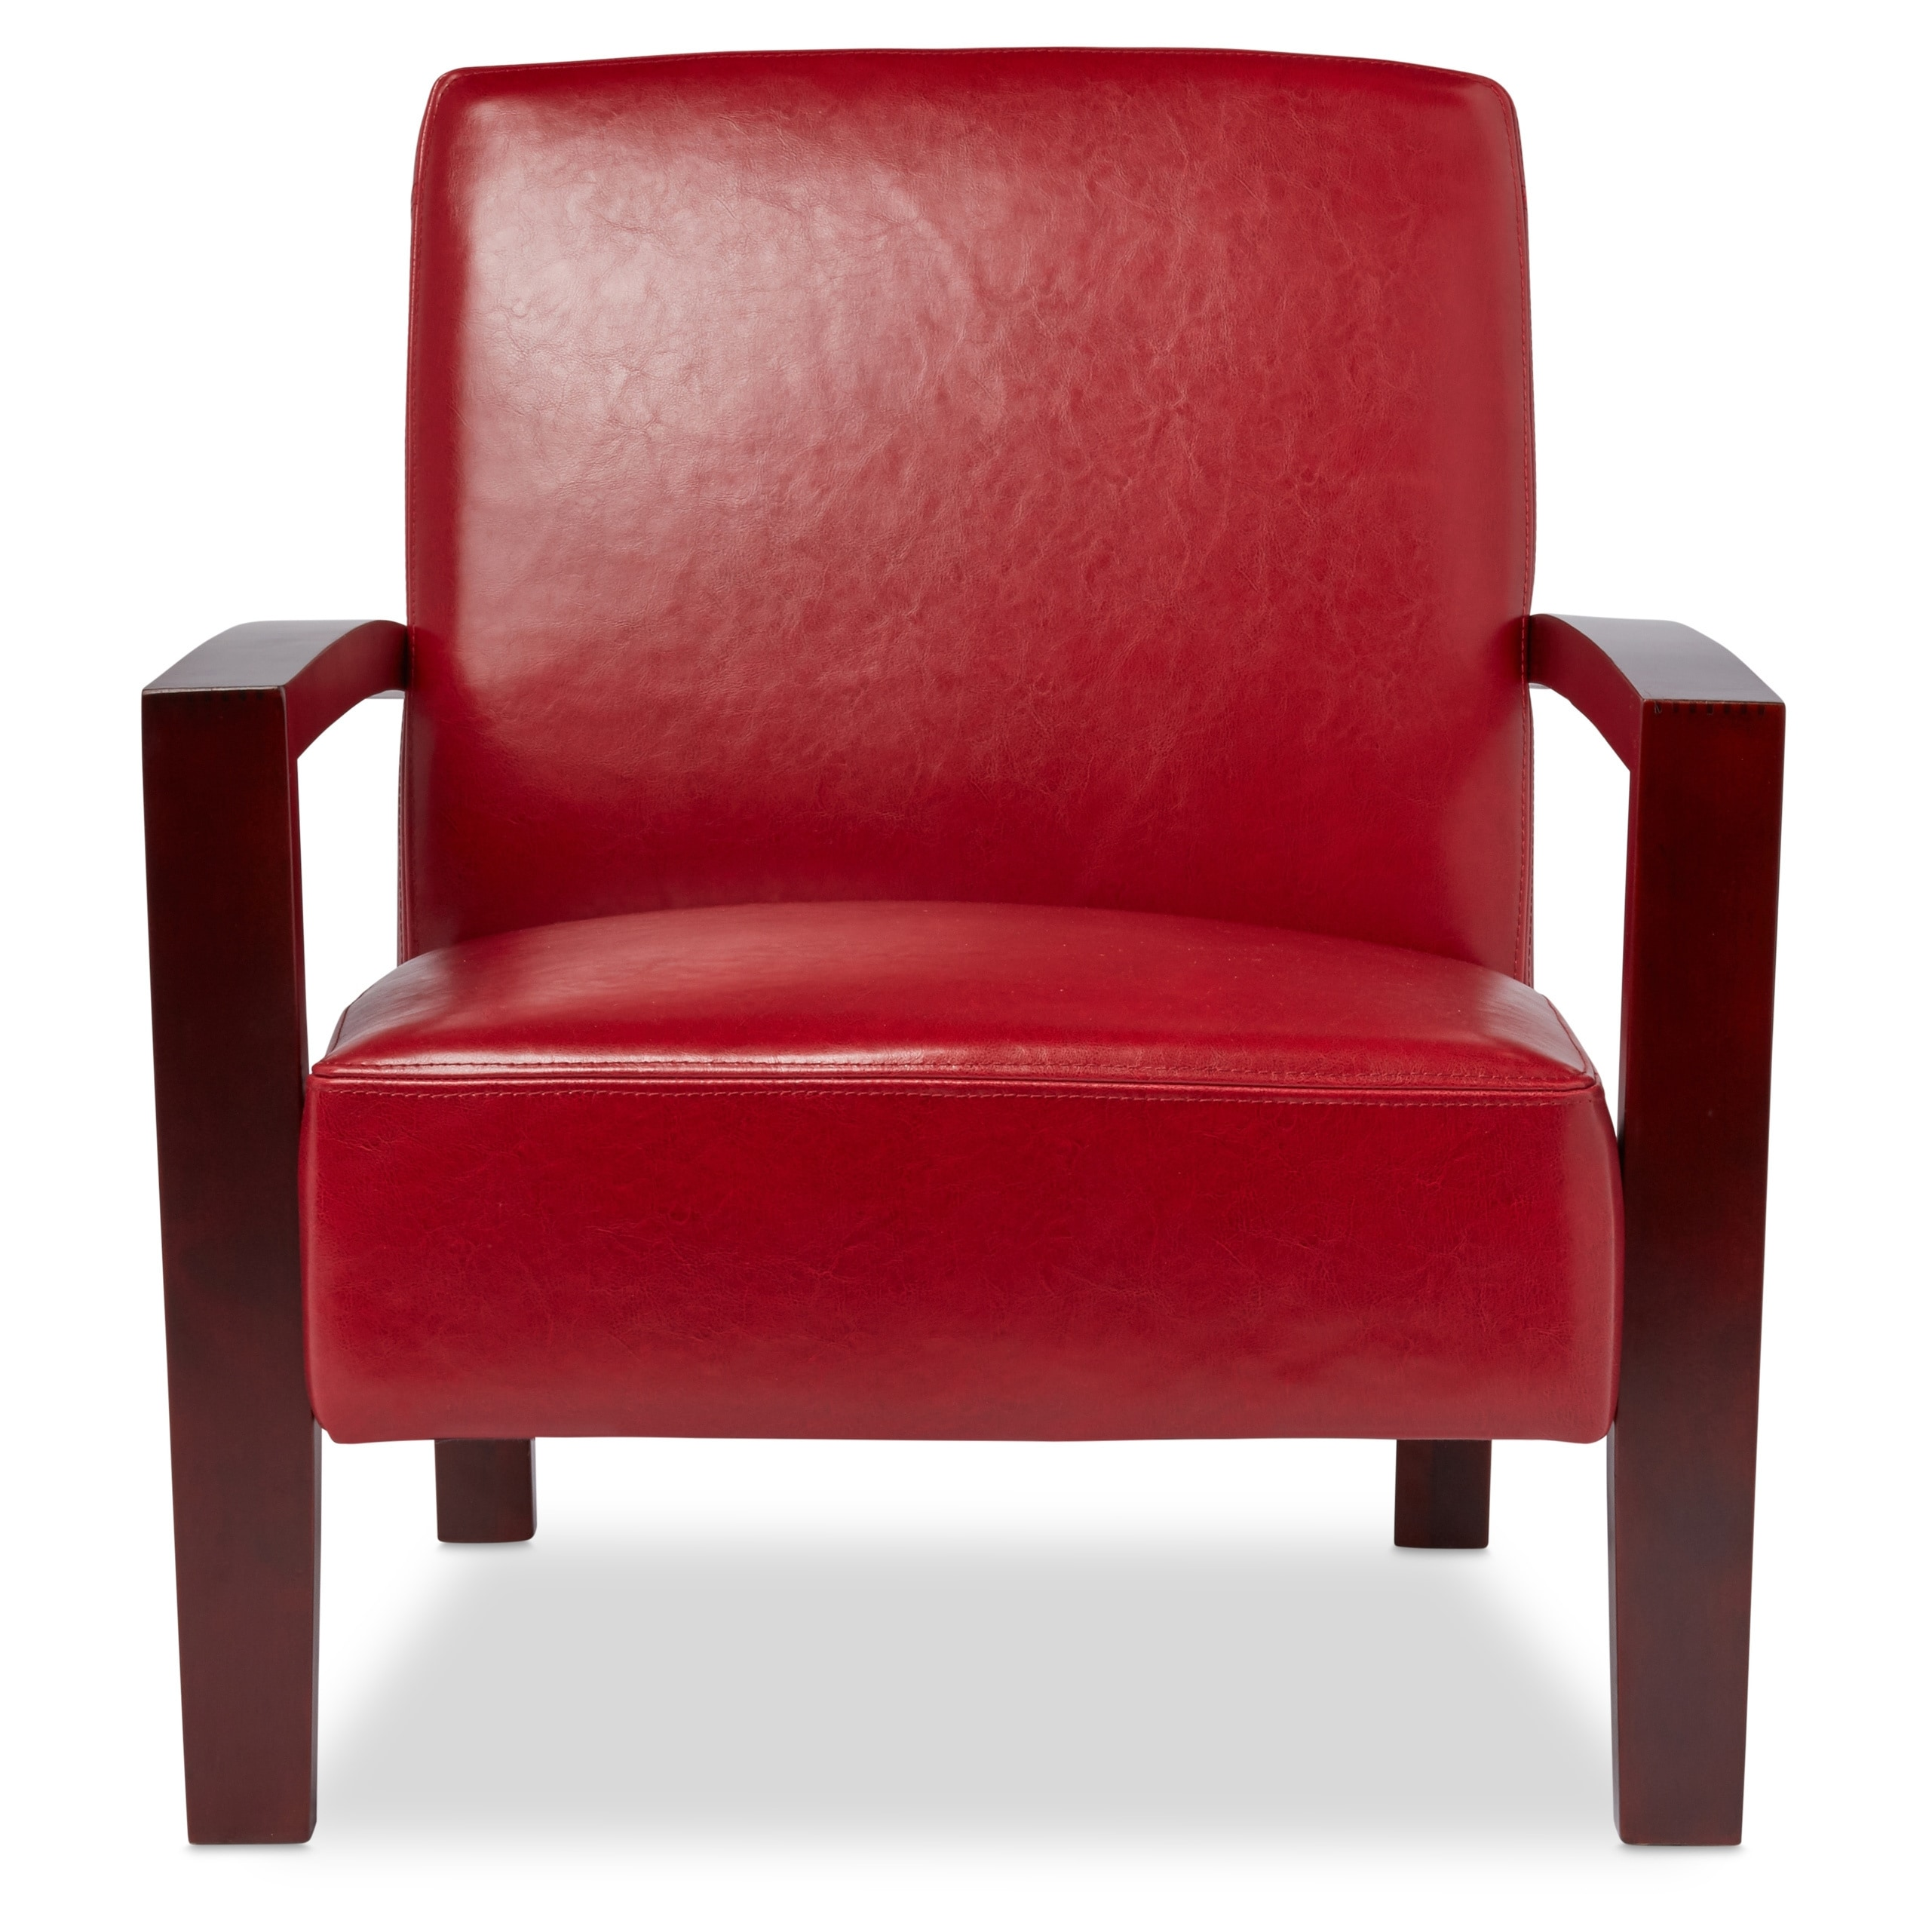 Clay Alder Home Roadster Burnt Red Leather Lounge Chair   Free Shipping  Today   Overstock.com   10823210